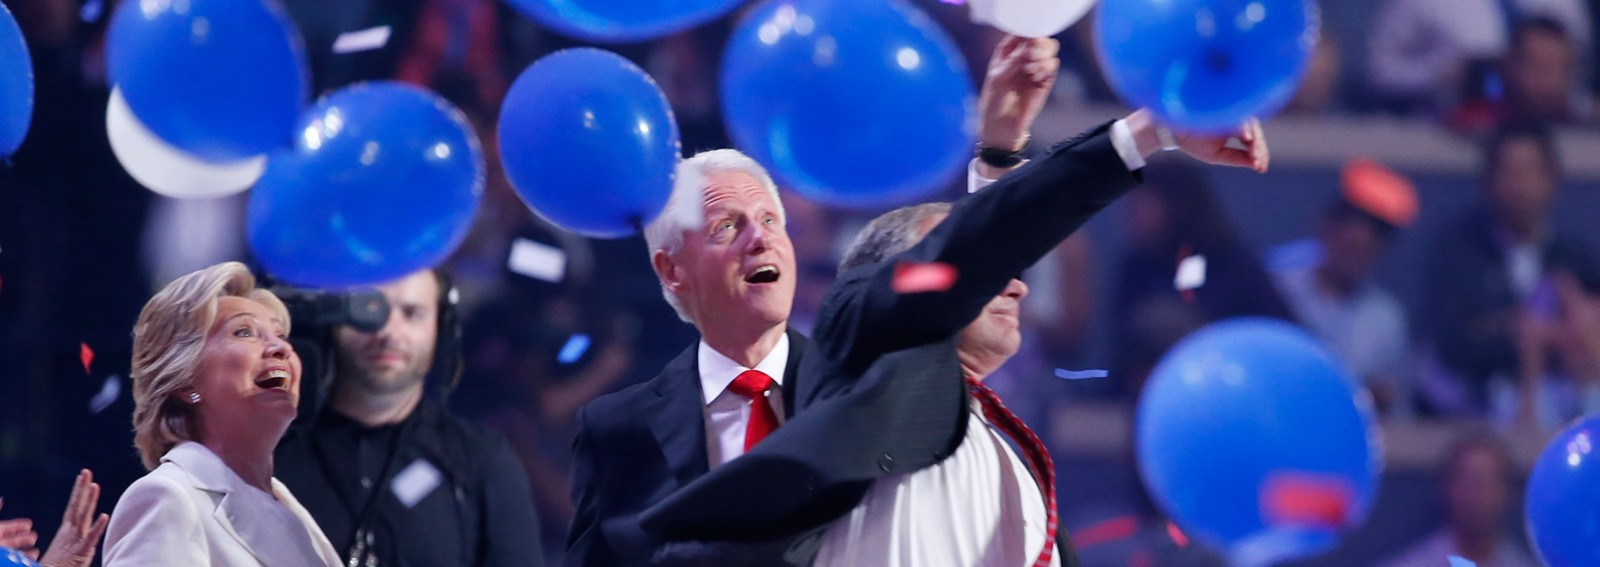 Hillary Clinton comments on her husband's viral reaction to DNC balloon drop